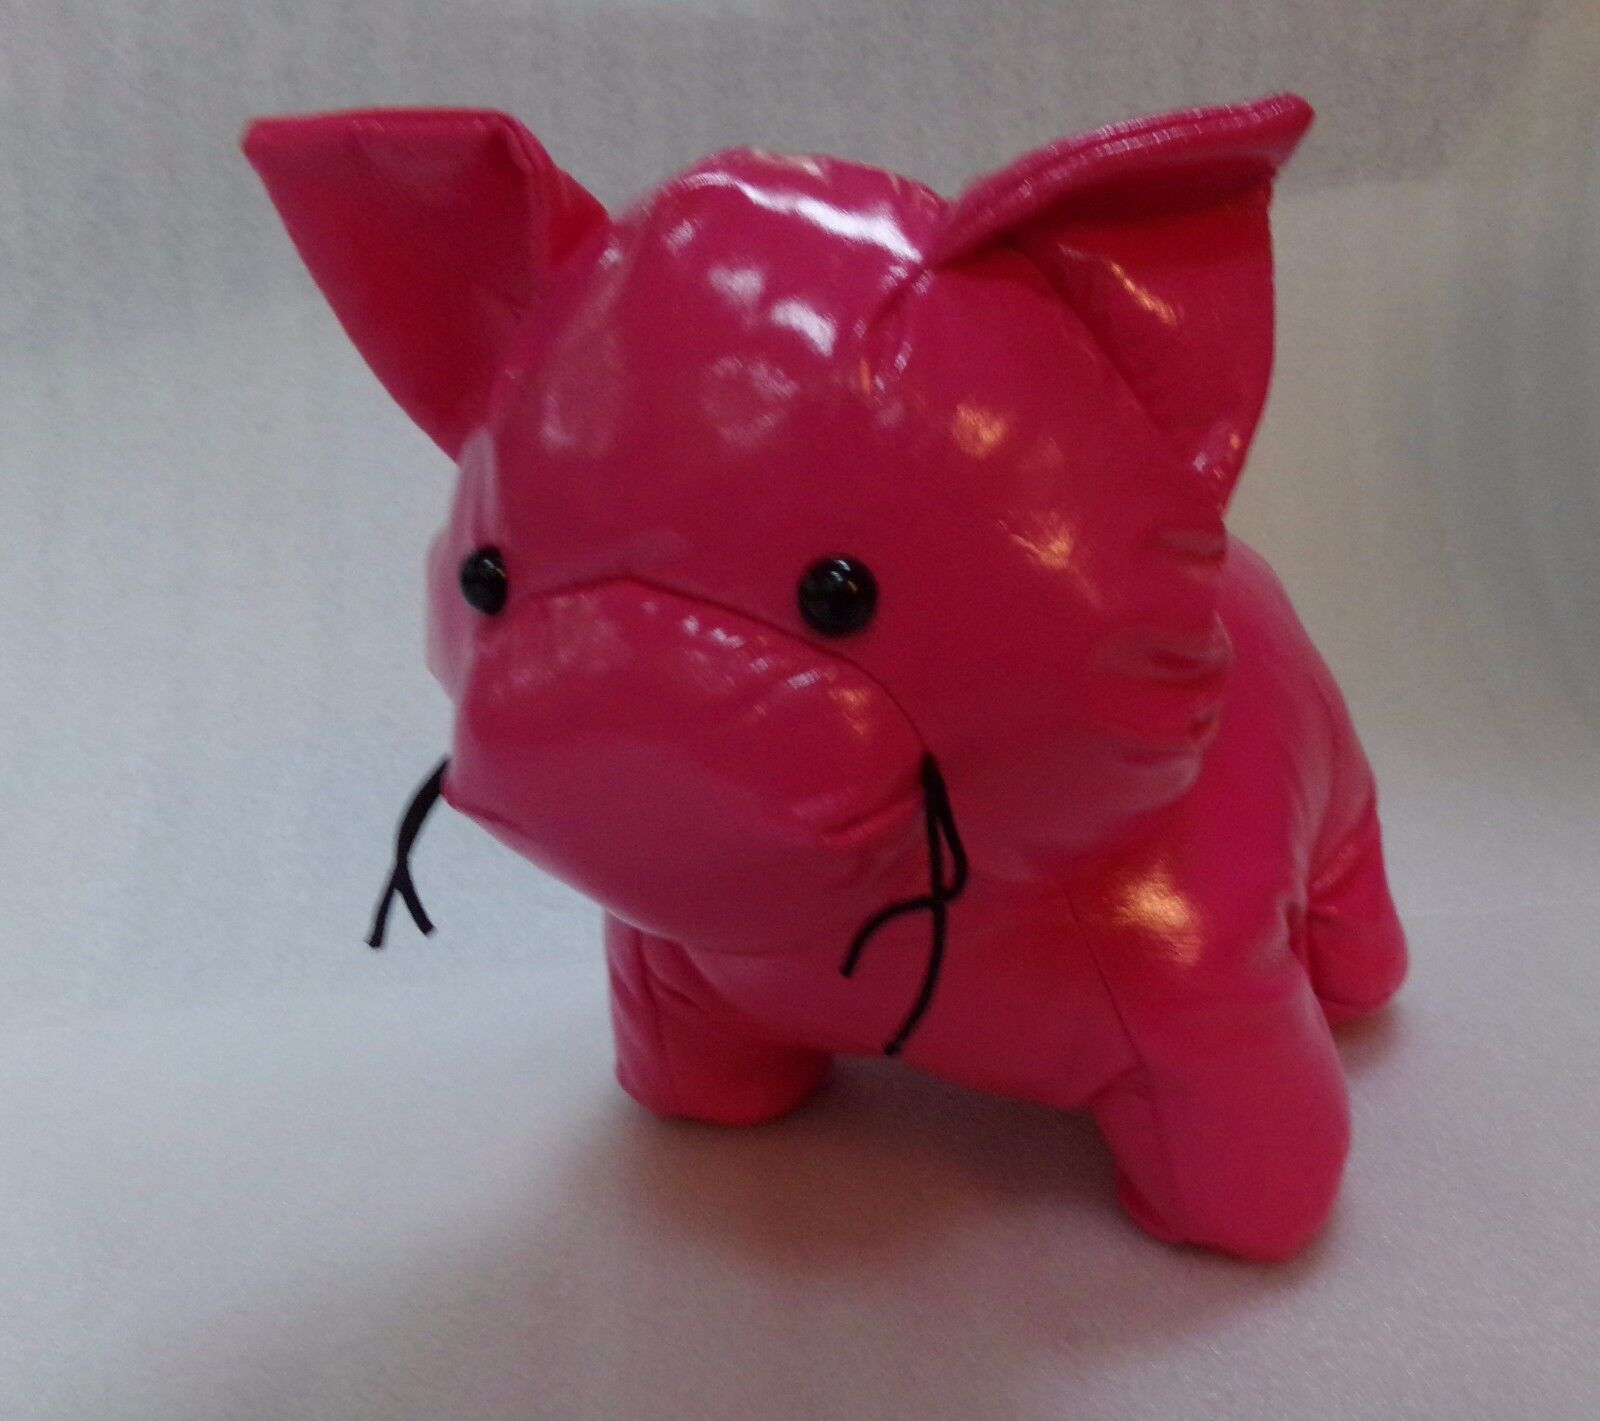 2010 Classic Manhattan Toy Company Plush Stuffed Bright Polyester Pink Pig 8x9